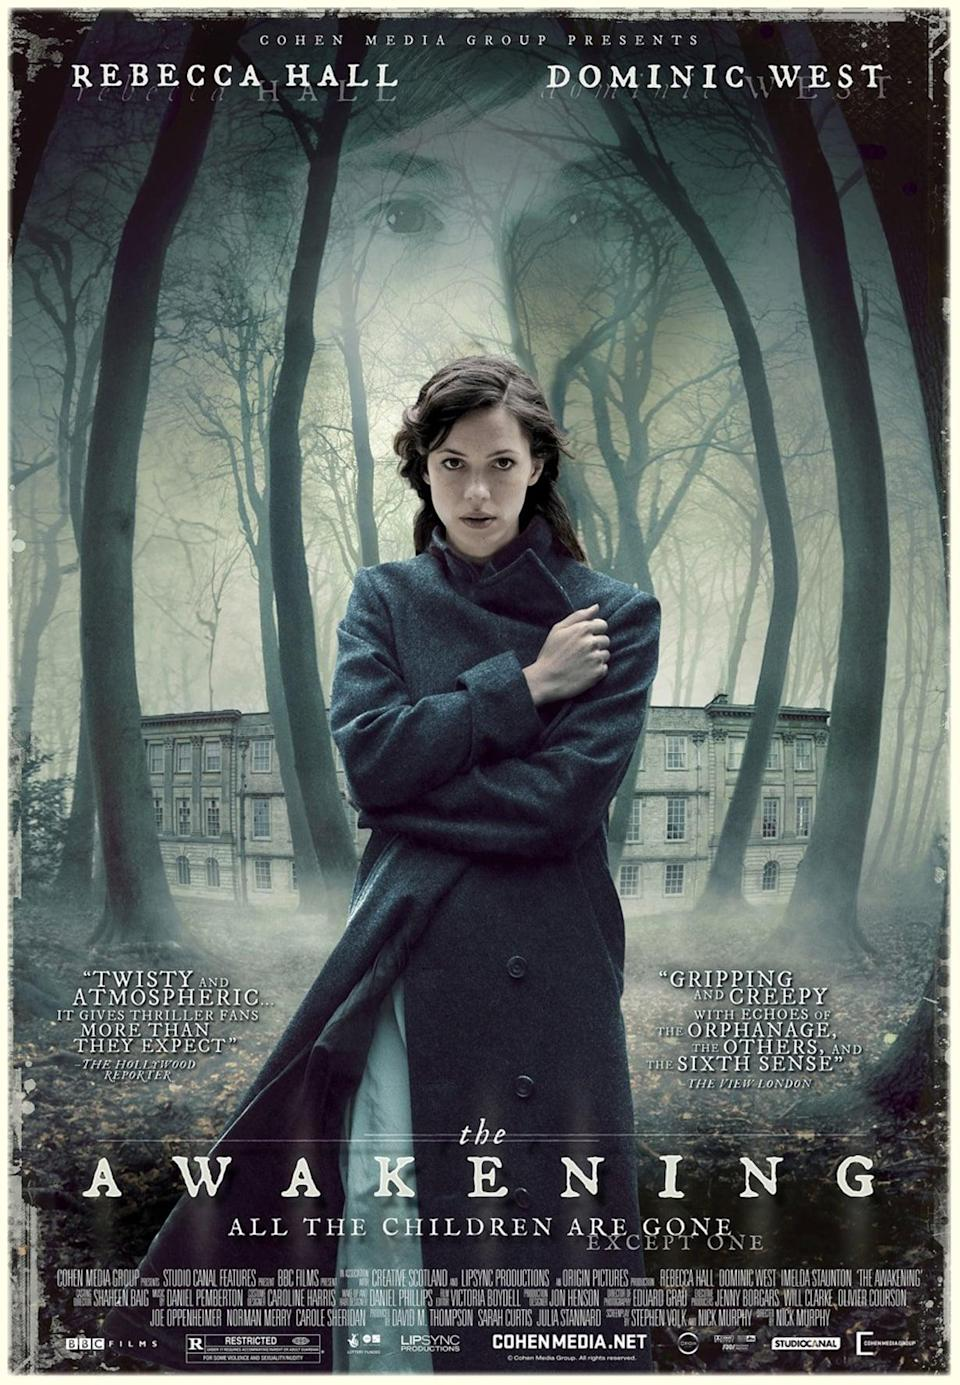 """<p>This supernatural drama is everything one would want from a spooky movie. Based in the 1920s, we follow Florence, who works on exposing frauds in the supernatural world. However, she finds herself in an actual ghost story at a boarding school and she has to figure out what happened. While it can be slow at times, the payoff is worth it.</p> <p><a href=""""https://www.amazon.com/gp/video/detail/amzn1.dv.gti.08b30b72-9481-a918-2a06-d2d20e027c4e?autoplay=1&amp;ref_=atv_cf_strg_wb"""" class=""""link rapid-noclick-resp"""" rel=""""nofollow noopener"""" target=""""_blank"""" data-ylk=""""slk:Watch The Awakening on Amazon Prime"""">Watch <strong>The Awakening</strong> on Amazon Prime</a>.</p>"""